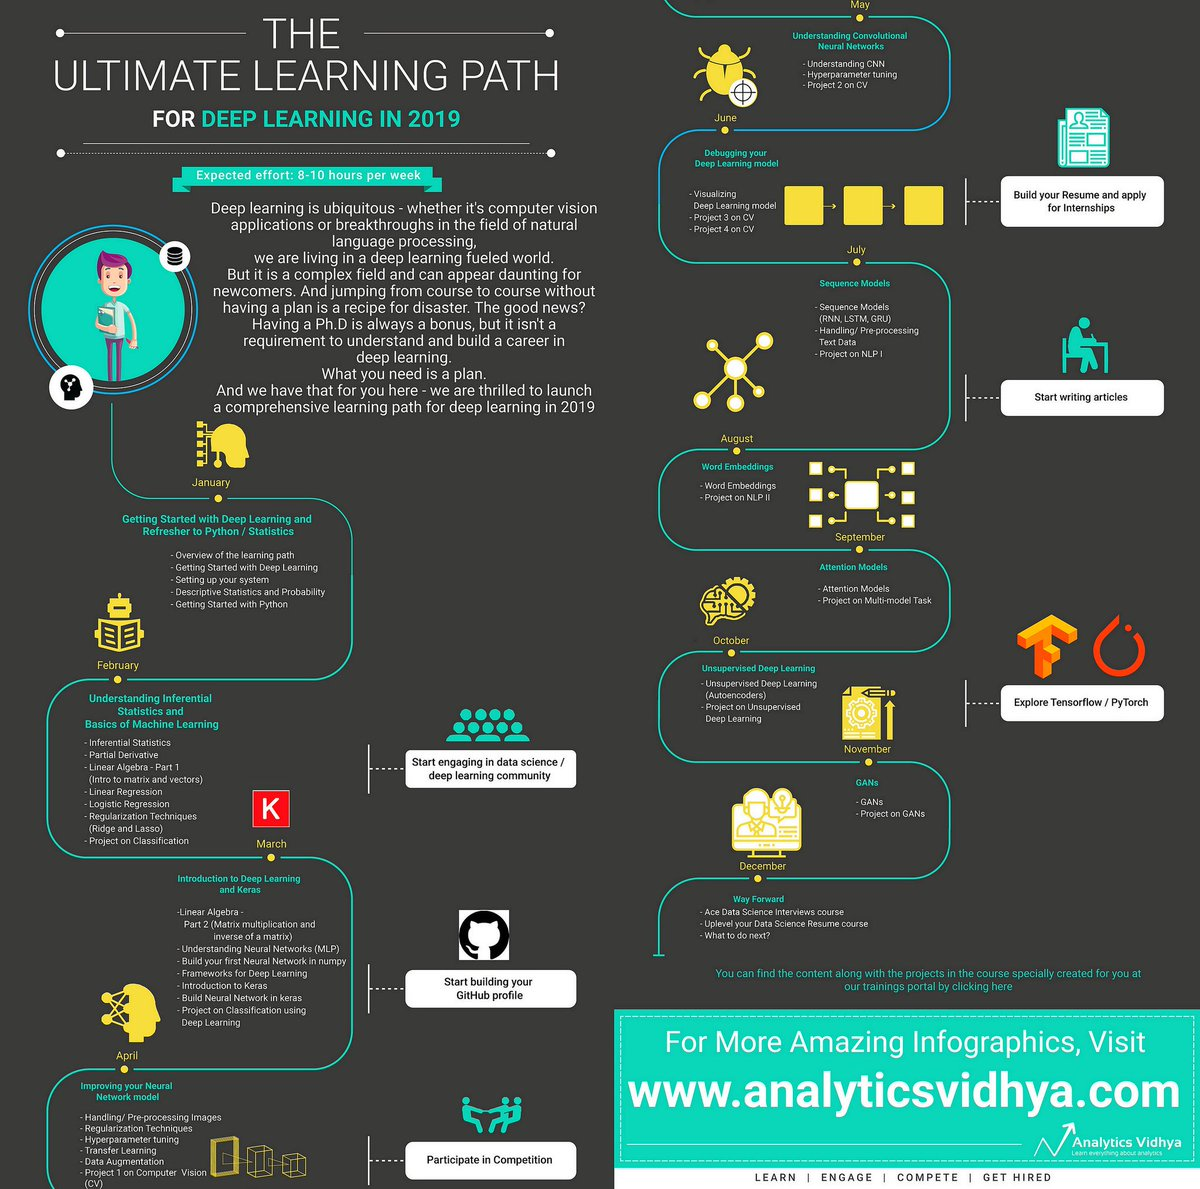 test Twitter Media - A Comprehensive Learning Path for Deep Learning in 2019 [Infographic] 👇 A plan for everyone who wants to improve their #DeepLearning skills, regardless of their level. https://t.co/NcgTHZNdZL v/ @analyticsvidhya #AI #MachineLearning #DataScience Cc @evankirstel @ahier @antgrasso https://t.co/GkQHdpSr6Z